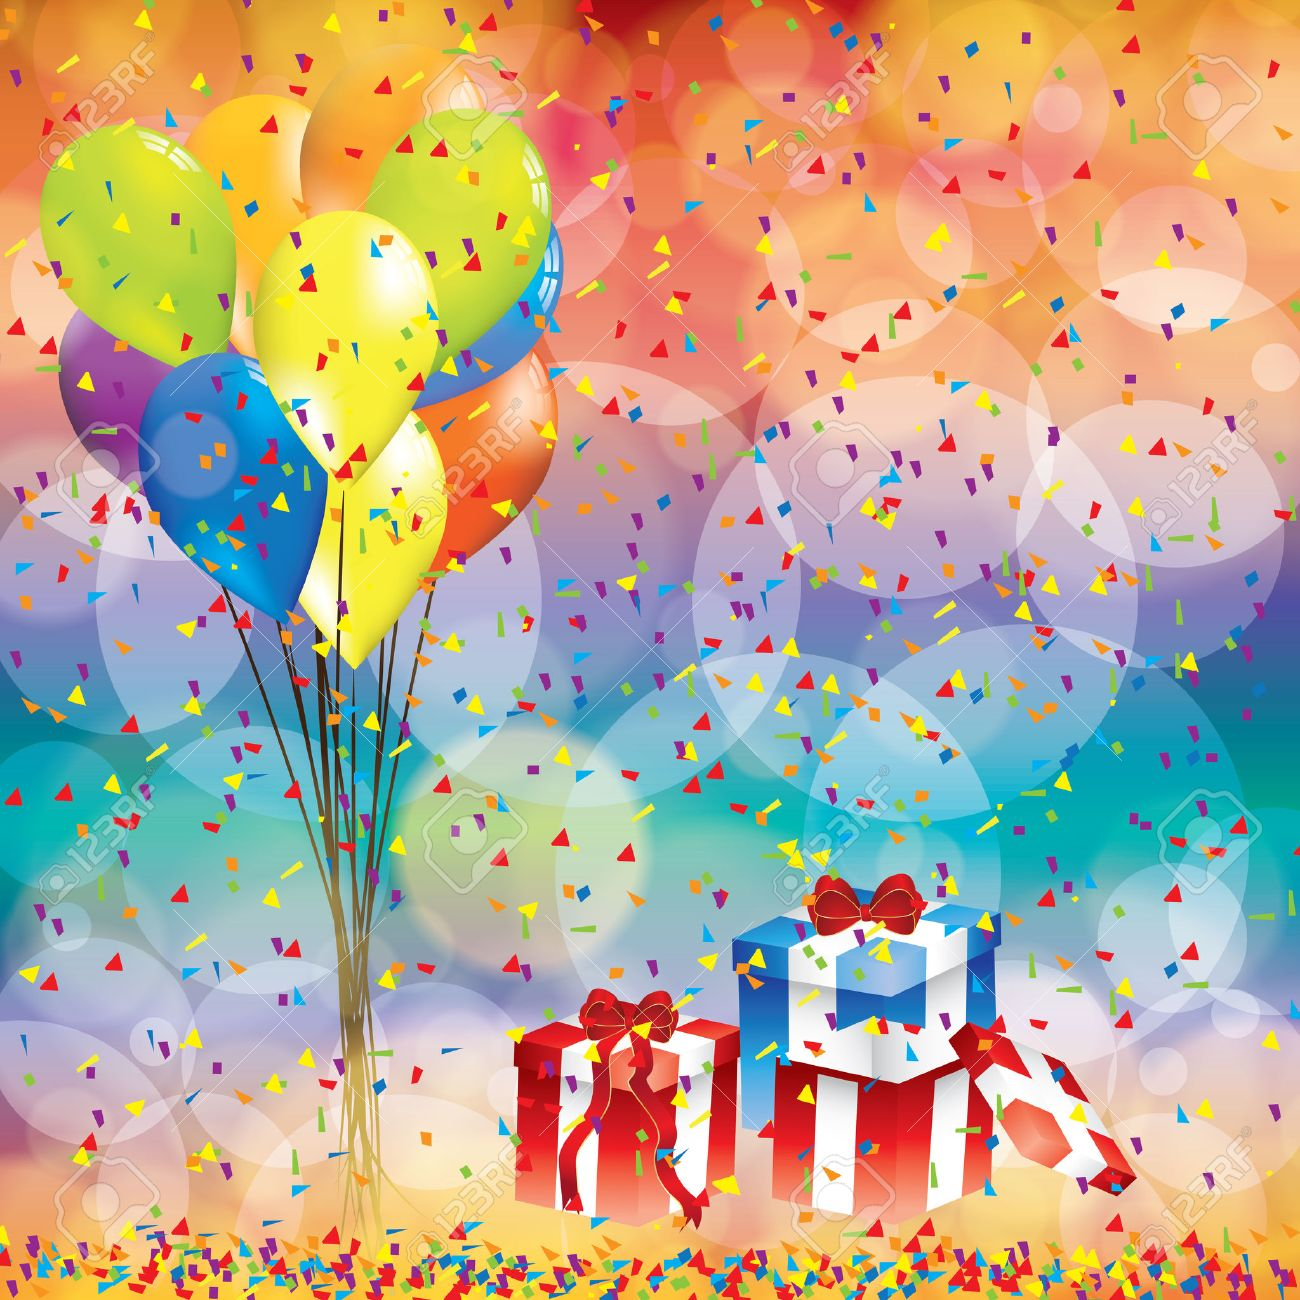 Bday background images - Happy Birthday Background With Balloon And Gifts Stock Vector 44061310